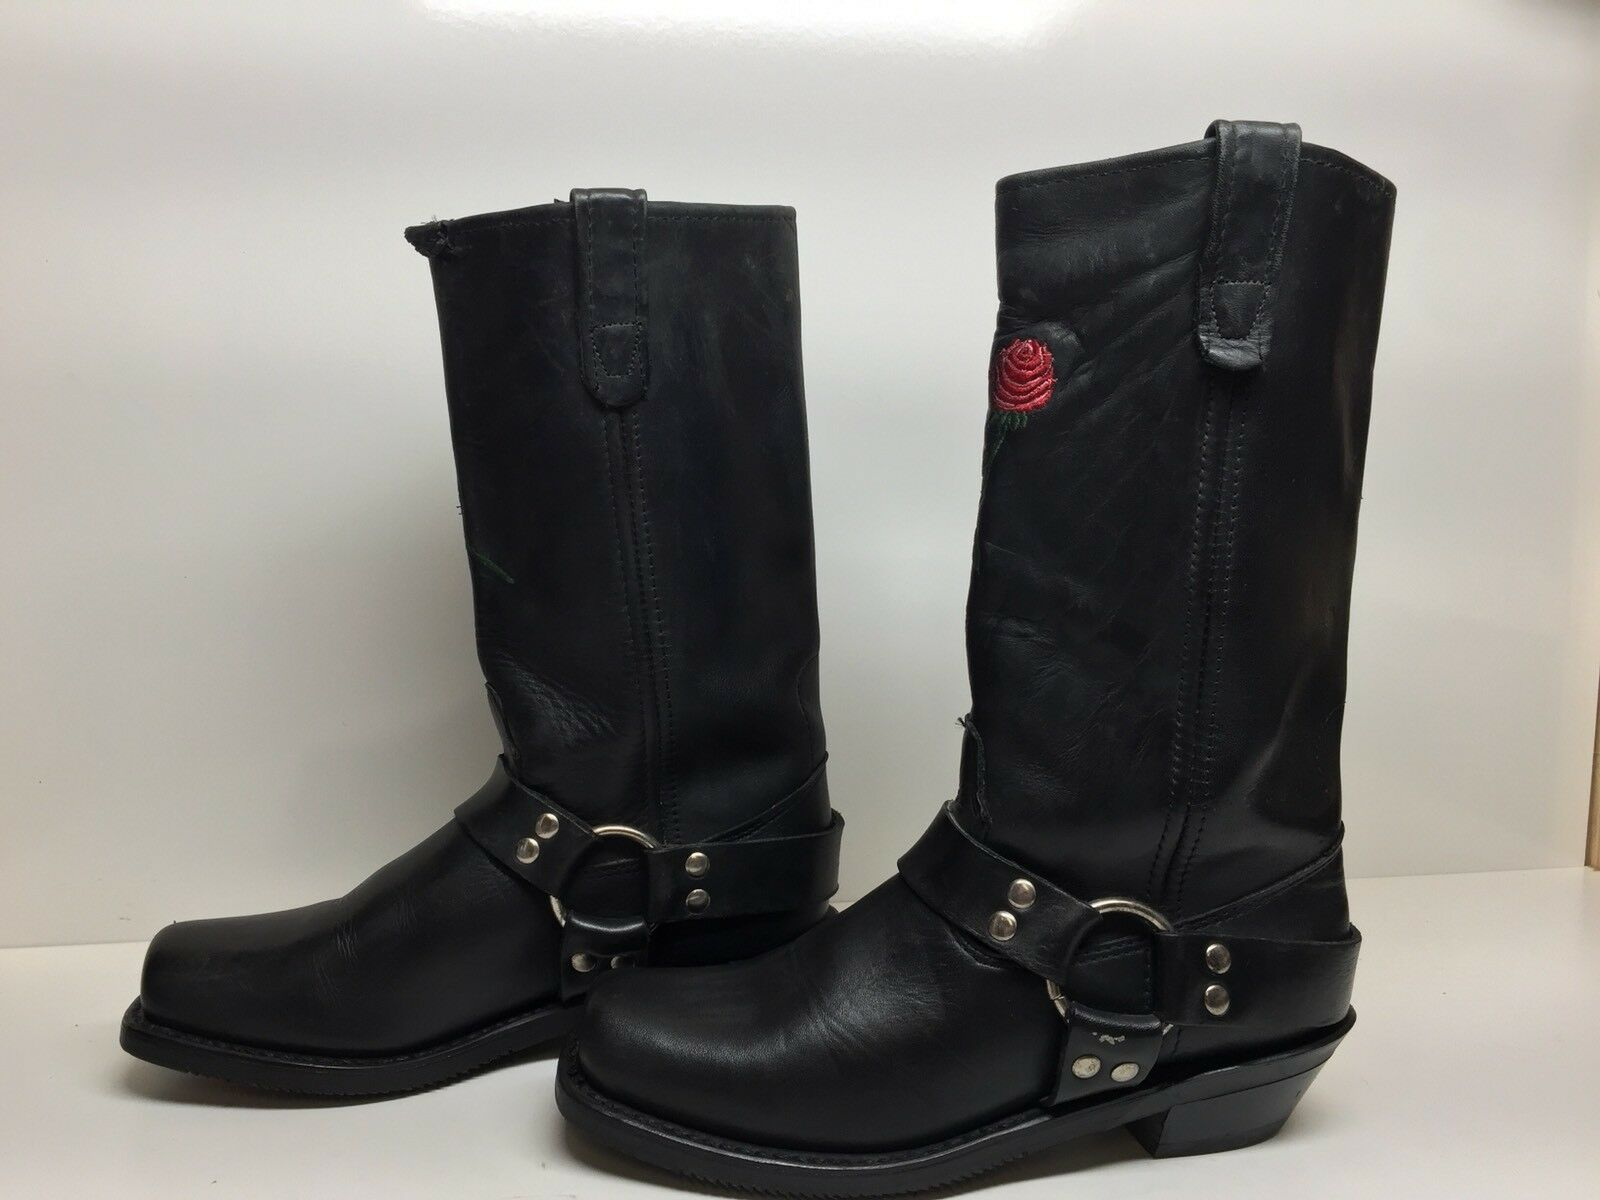 #C Damenschuhe DOUBLE H SQUARE TOE HARNESS MOTORCYCLE LEATHER BLACK BOOTS SIZE 9.5 M